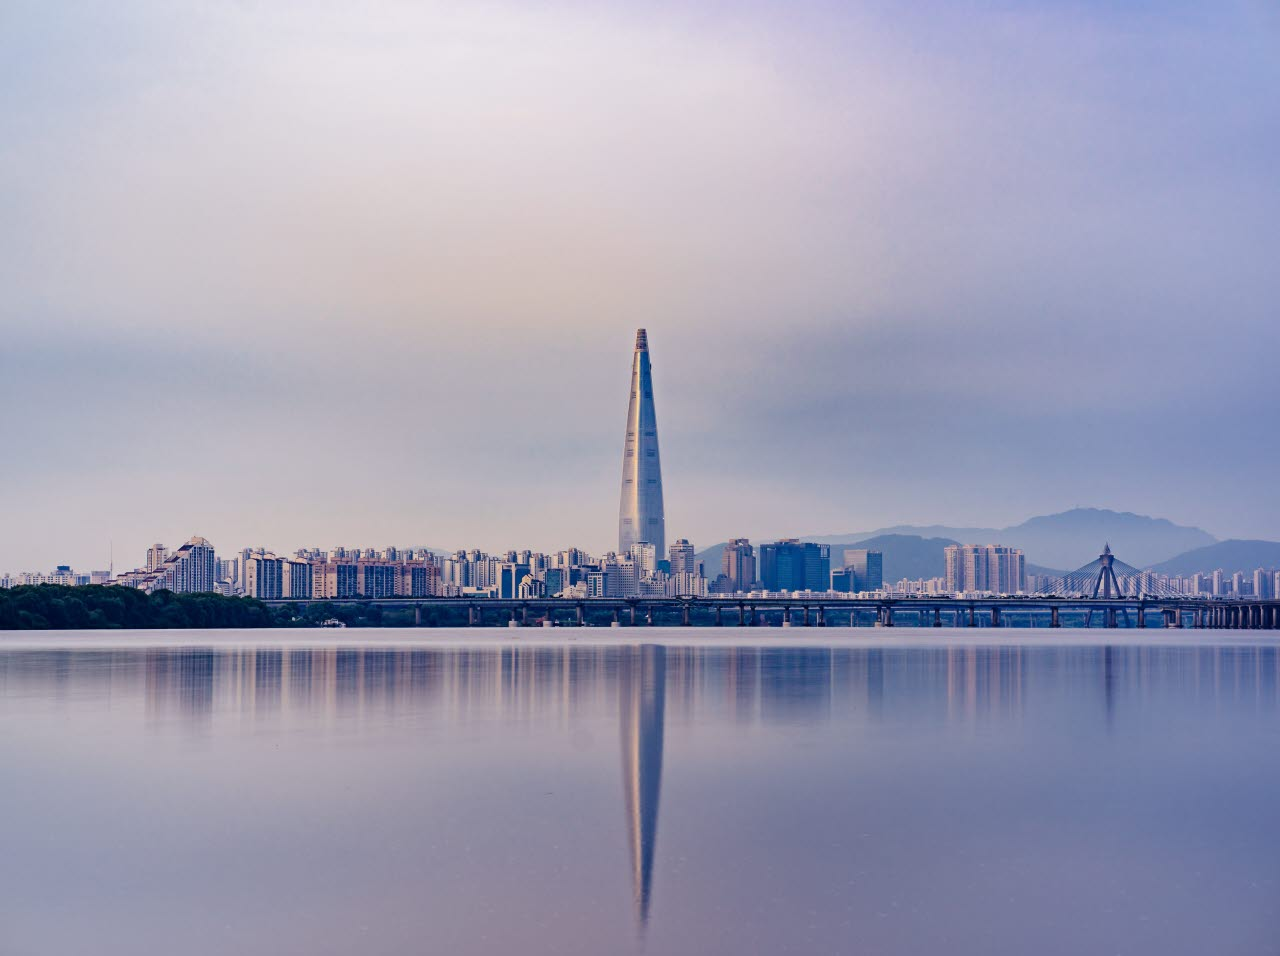 Seoul Korea Lotte Tower